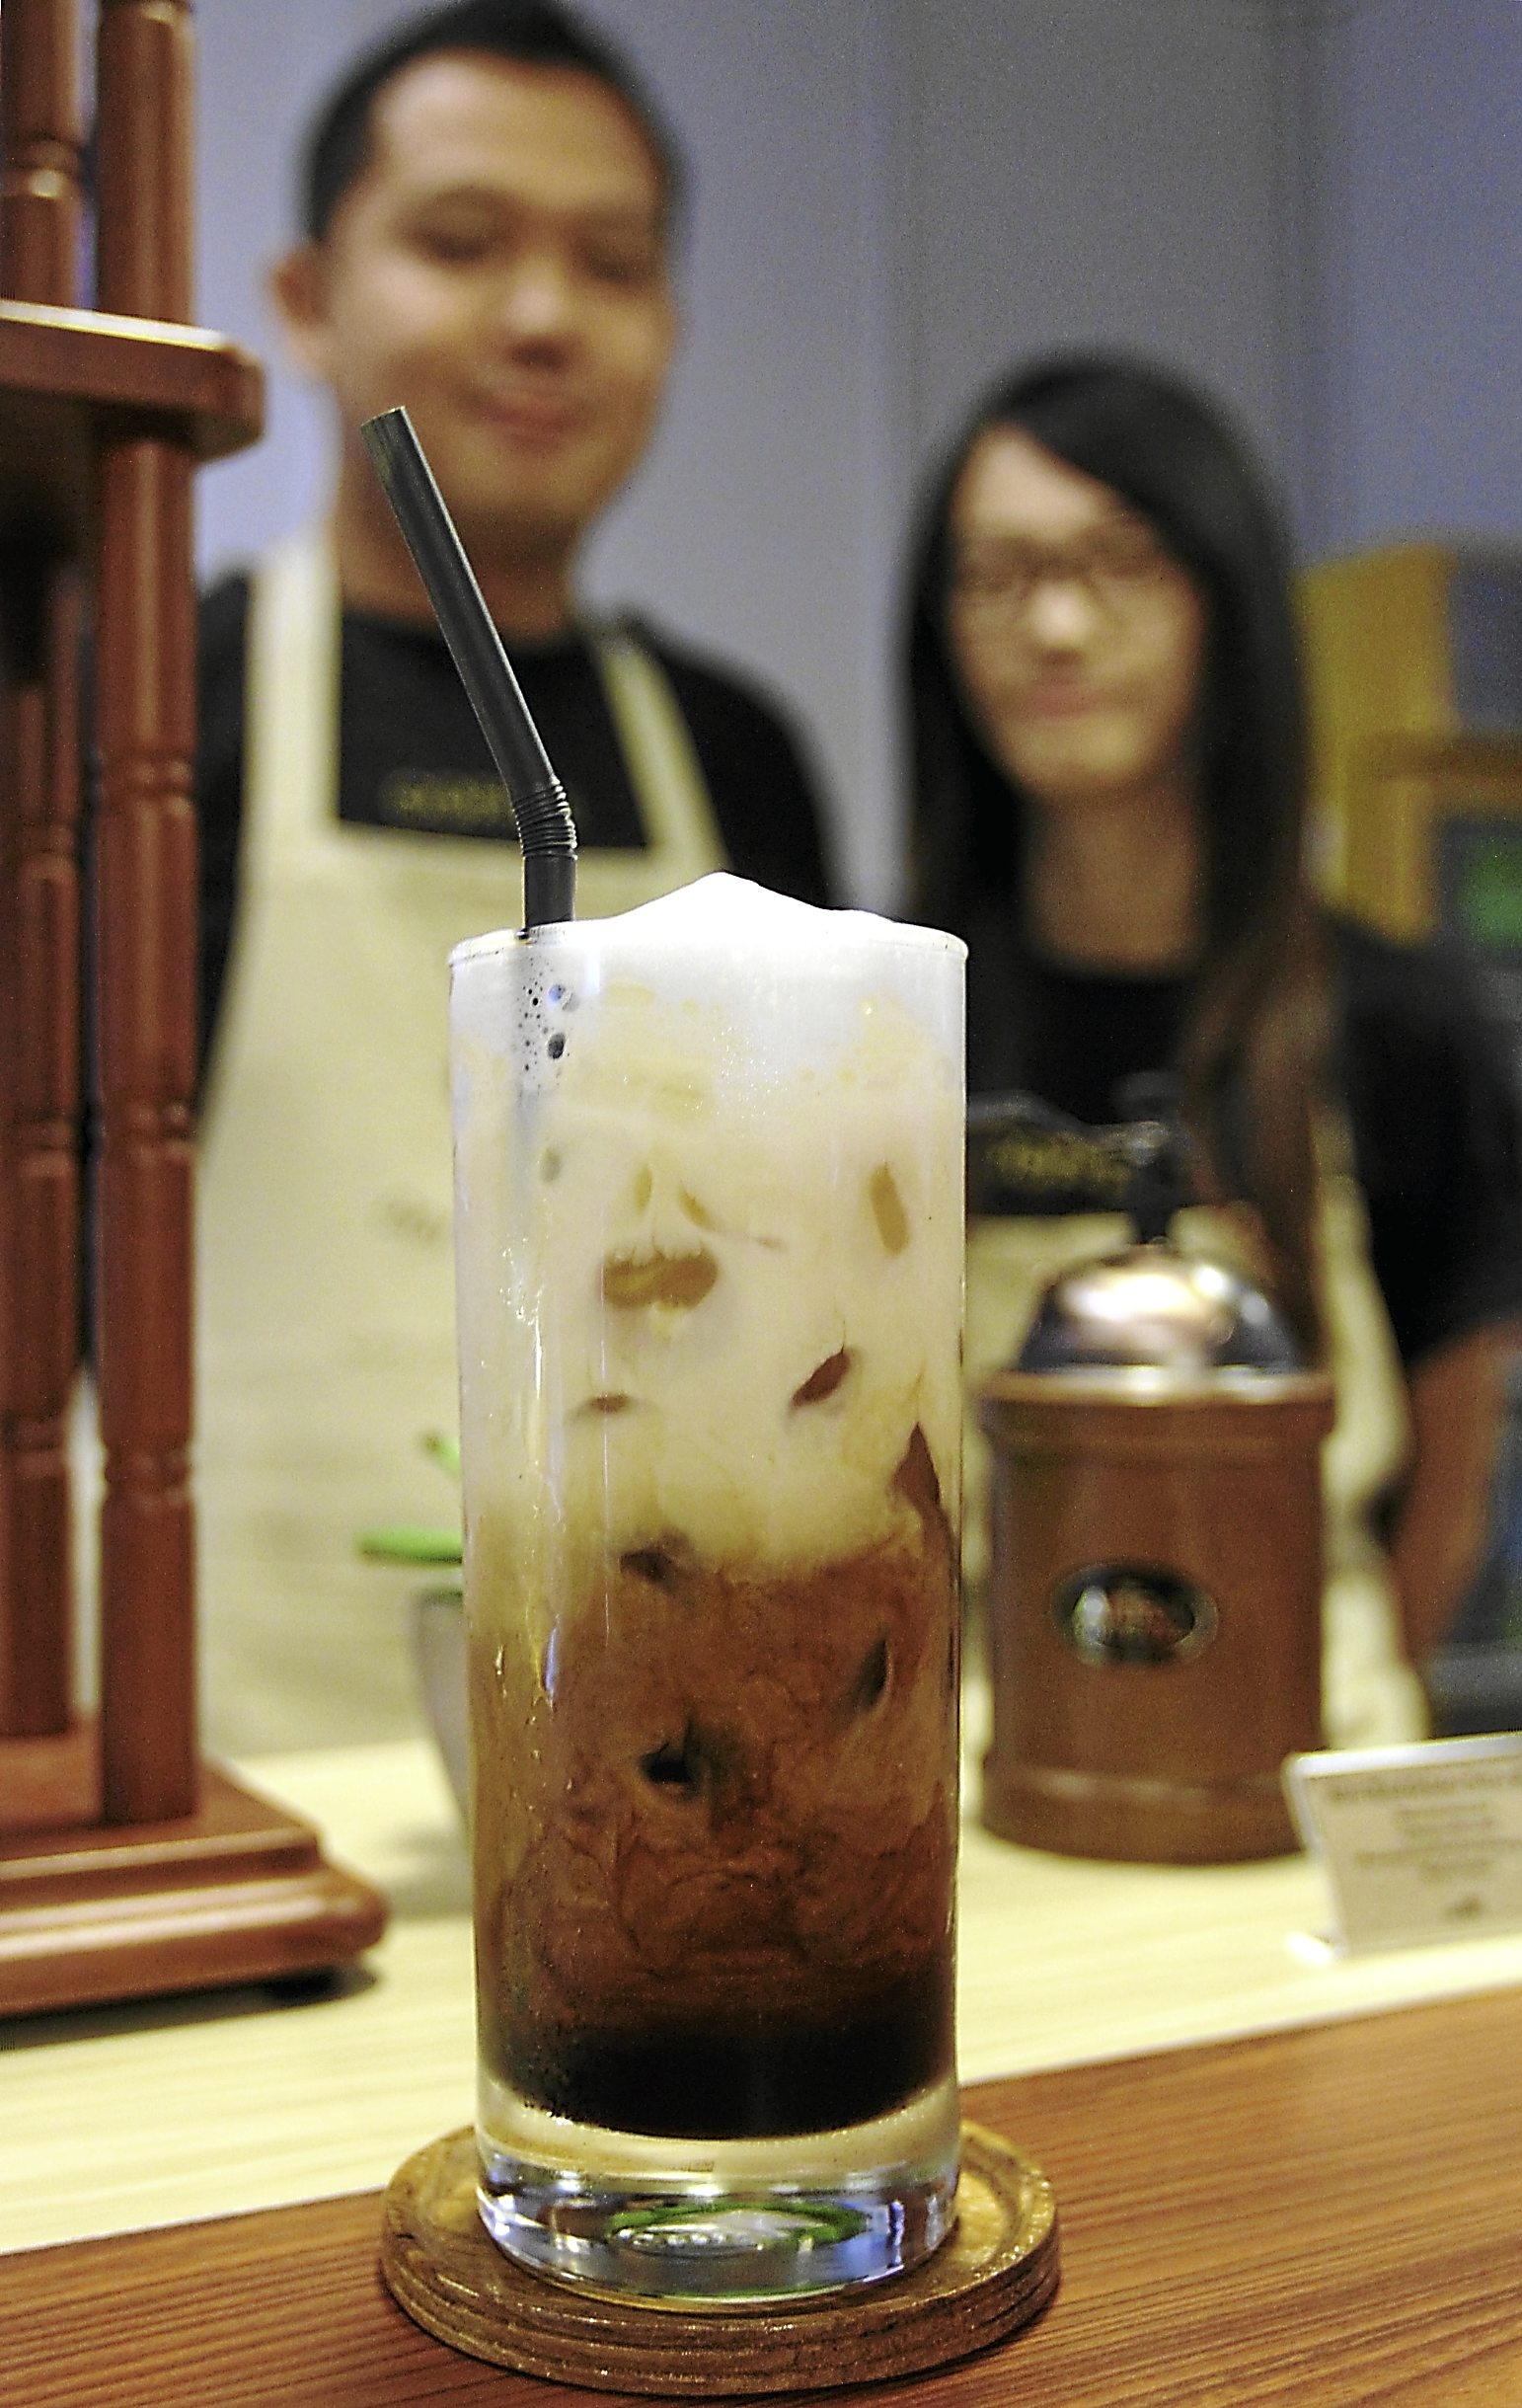 Iced Doi Chaang Coffee from the Doi Chaang cafe in Jaya One, Petaling Jaya. In the background are Brian Lee and Luisa Kwek.